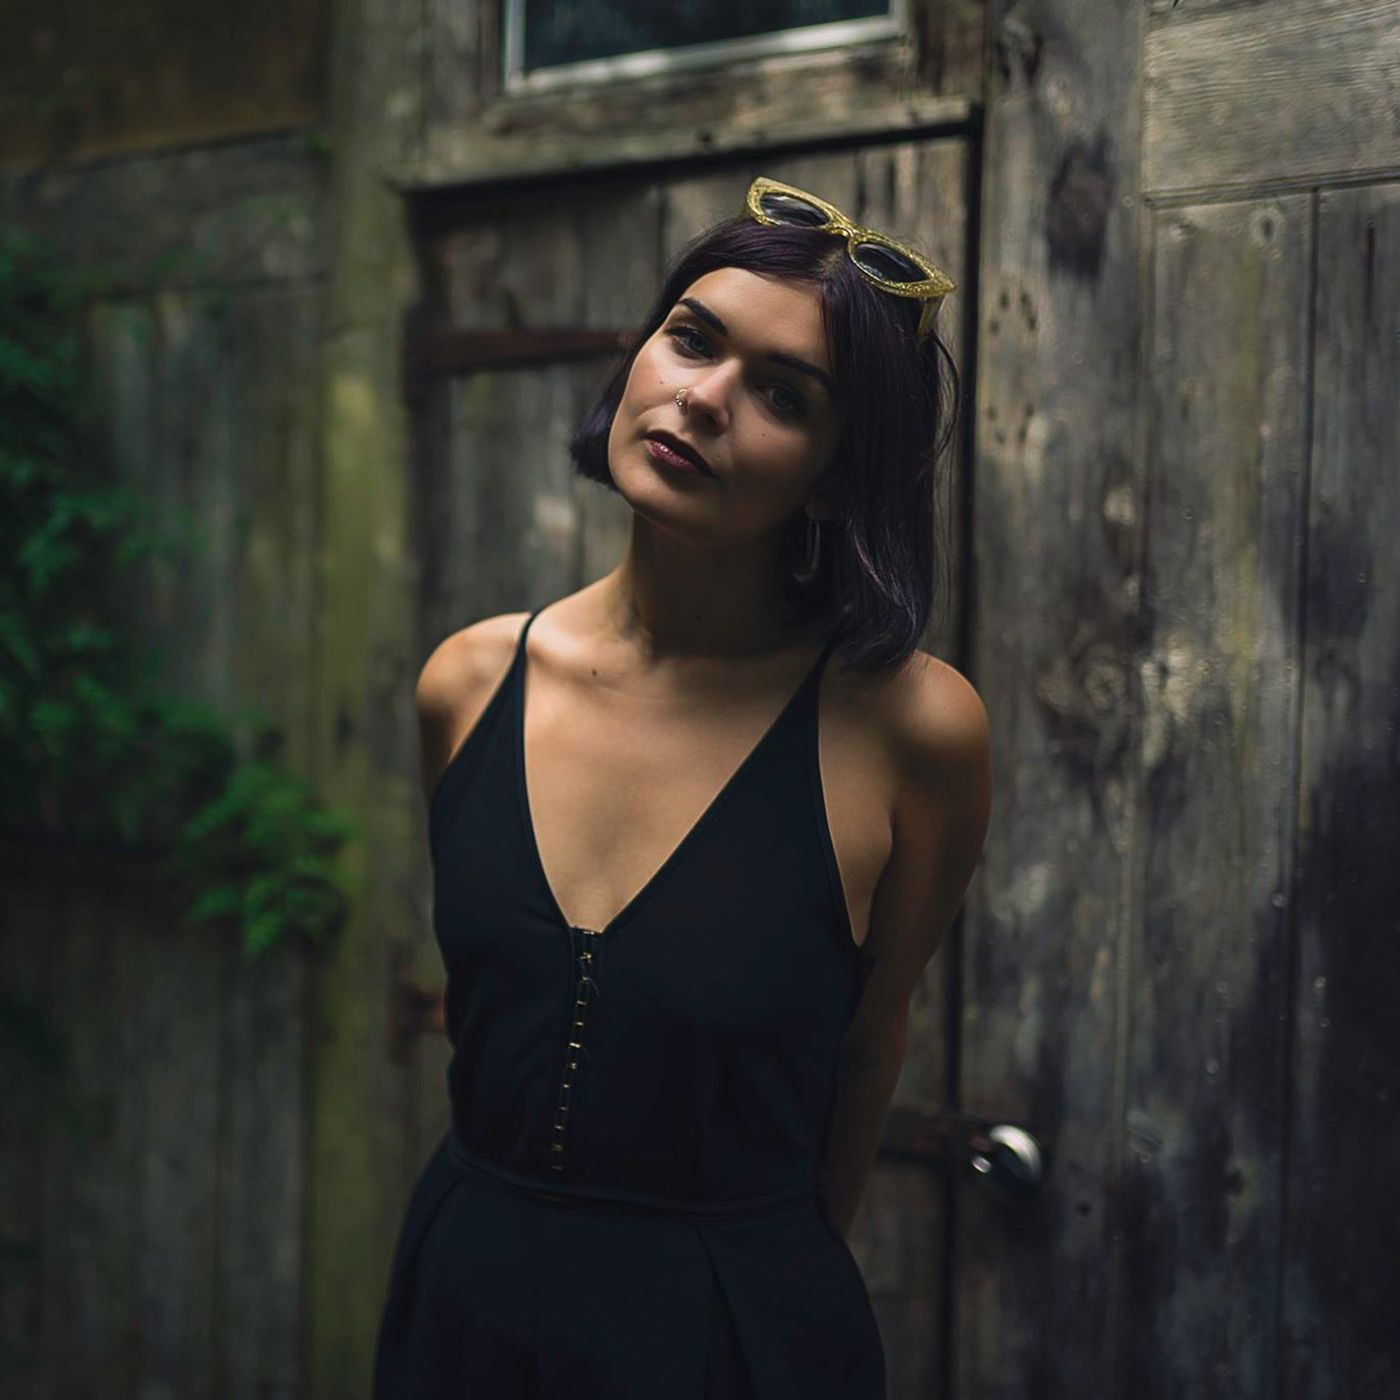 No Really, I'm Fine - Bessie Turner on Mental Health and being a Musician